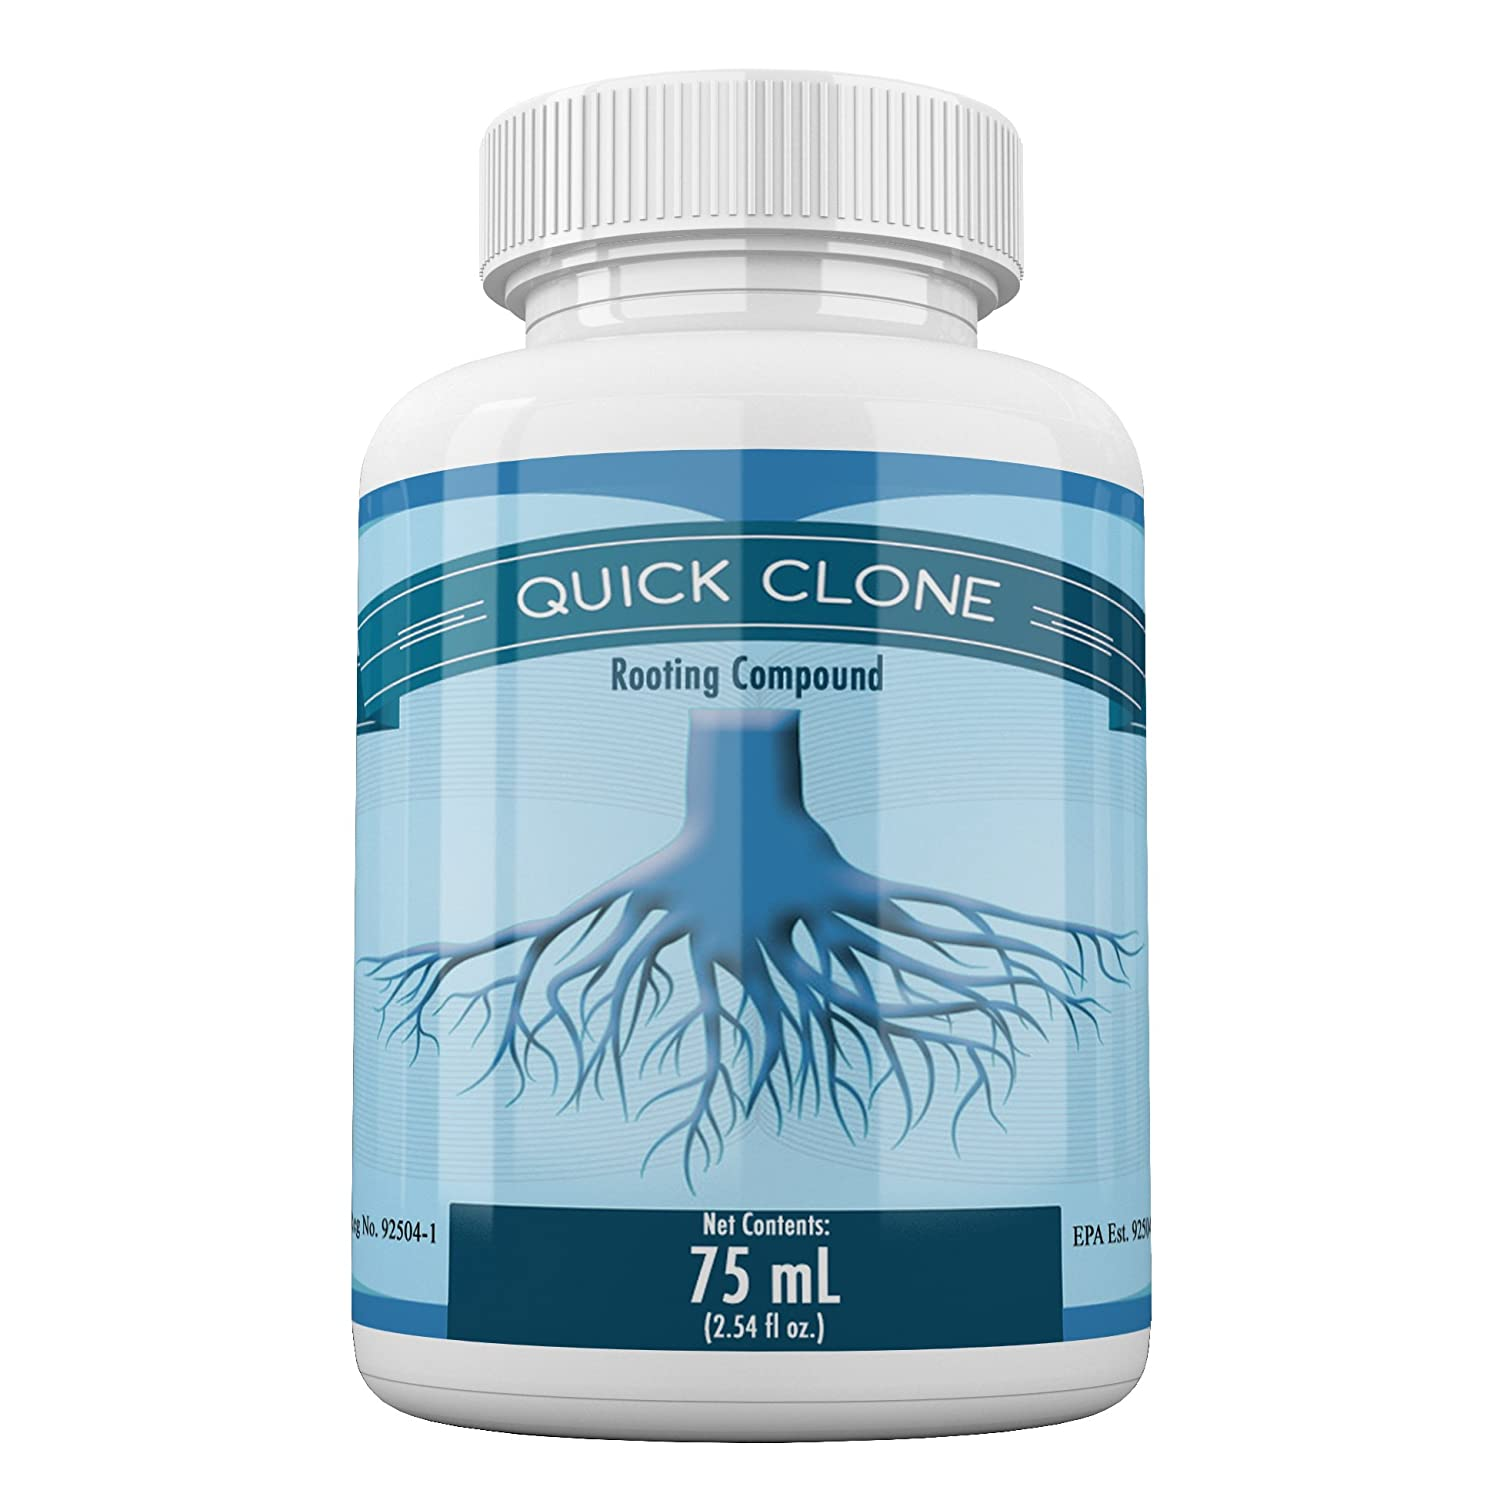 Quick Clone Gel - Most Advanced Cloning Gel for Faster, Healthier, Stronger Rooting Clones.